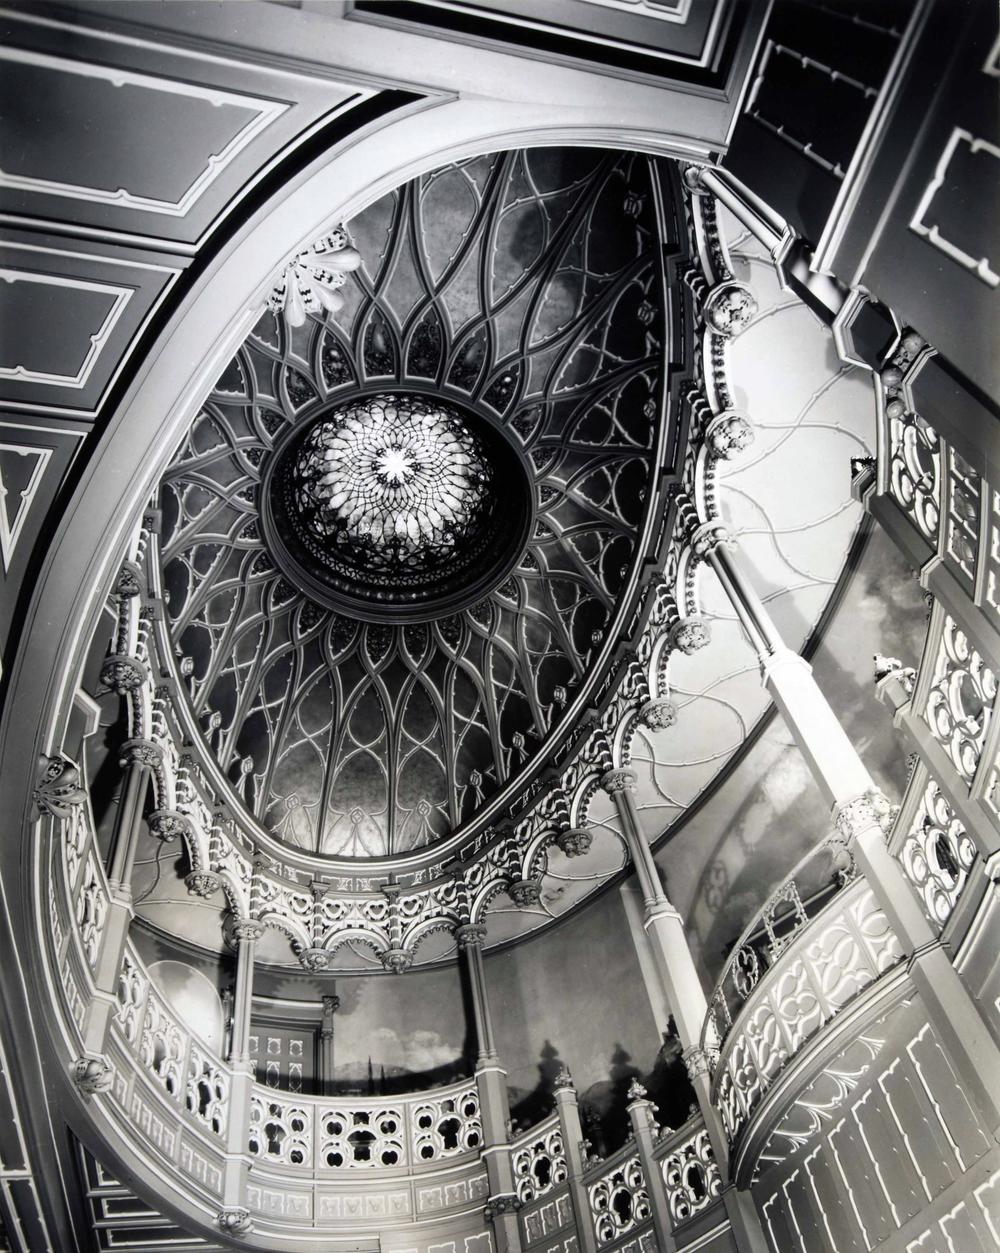 Clarence John Laughlin (American, 1905-1985), The Improbable Dome (No. 1), 1965, gelatin silver print. High Museum of Art, Atlanta, gift of Joshua Mann Pailet in honor of his mother, Charlotte Mann Pailet, her family, and Sir Nicholas Winton, 2017.427.